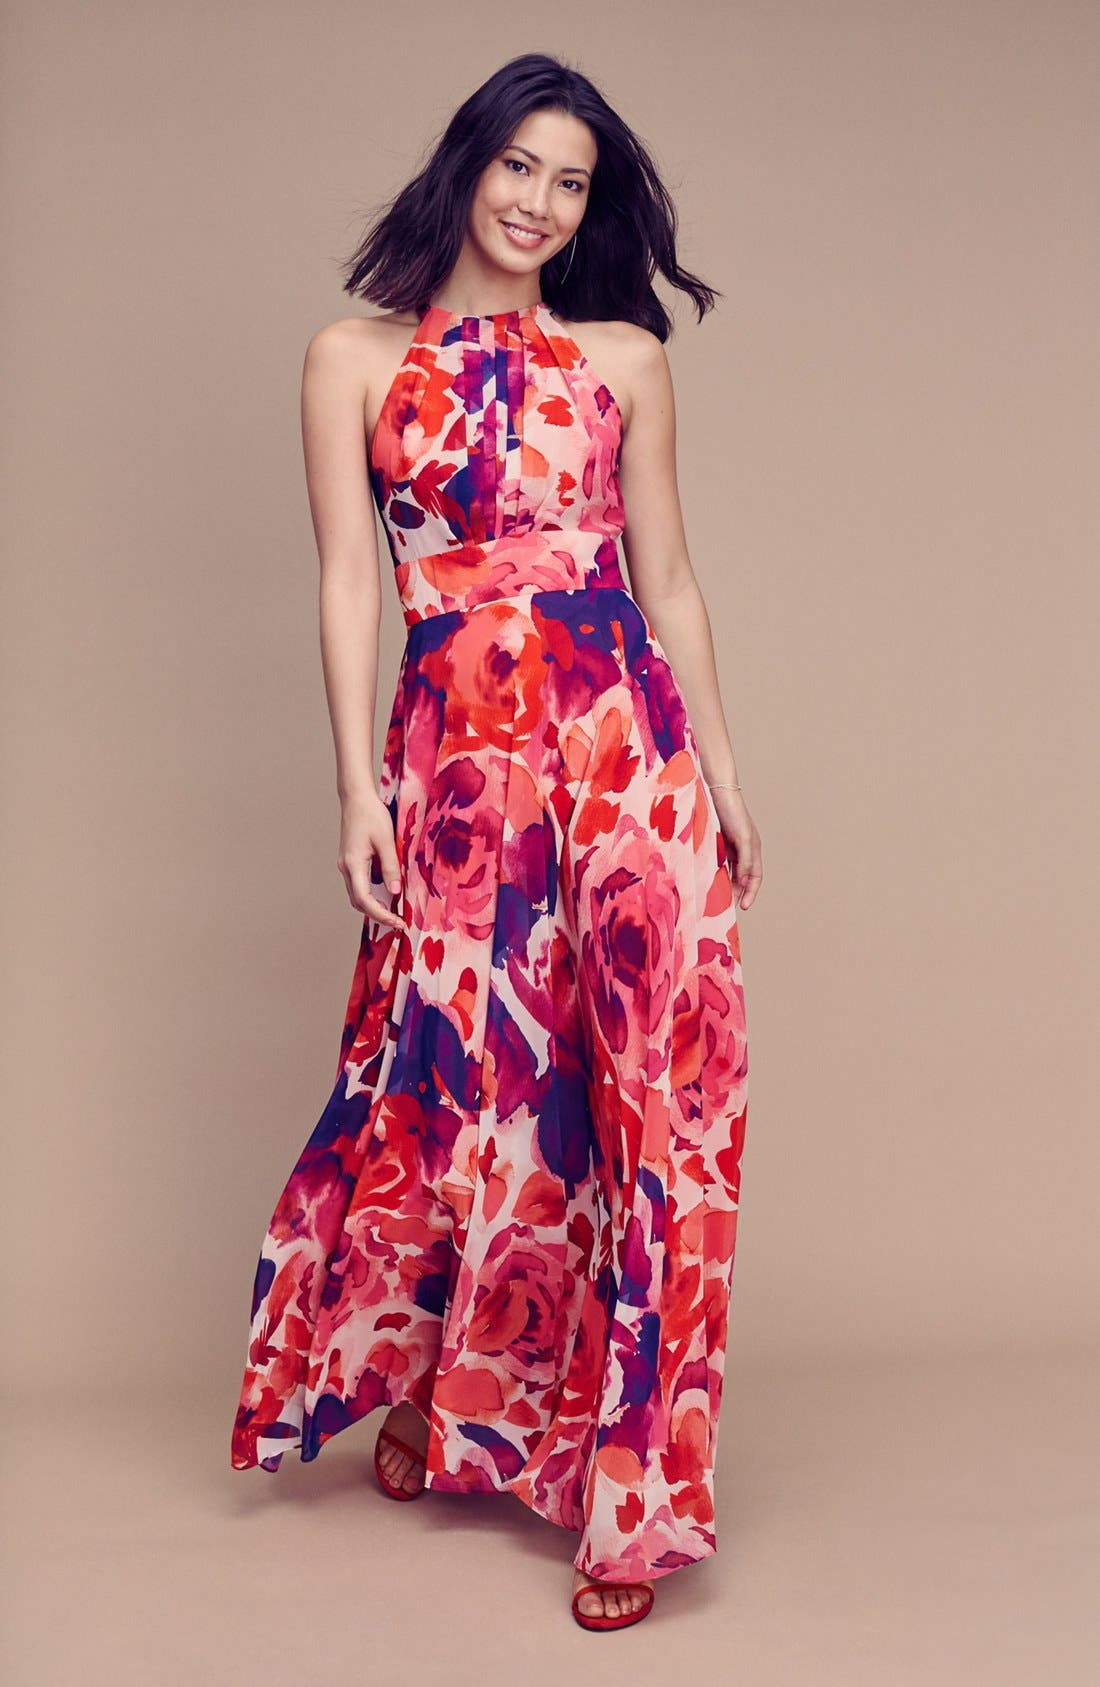 Floral Print Halter Maxi Dress,                             Alternate thumbnail 6, color,                             660